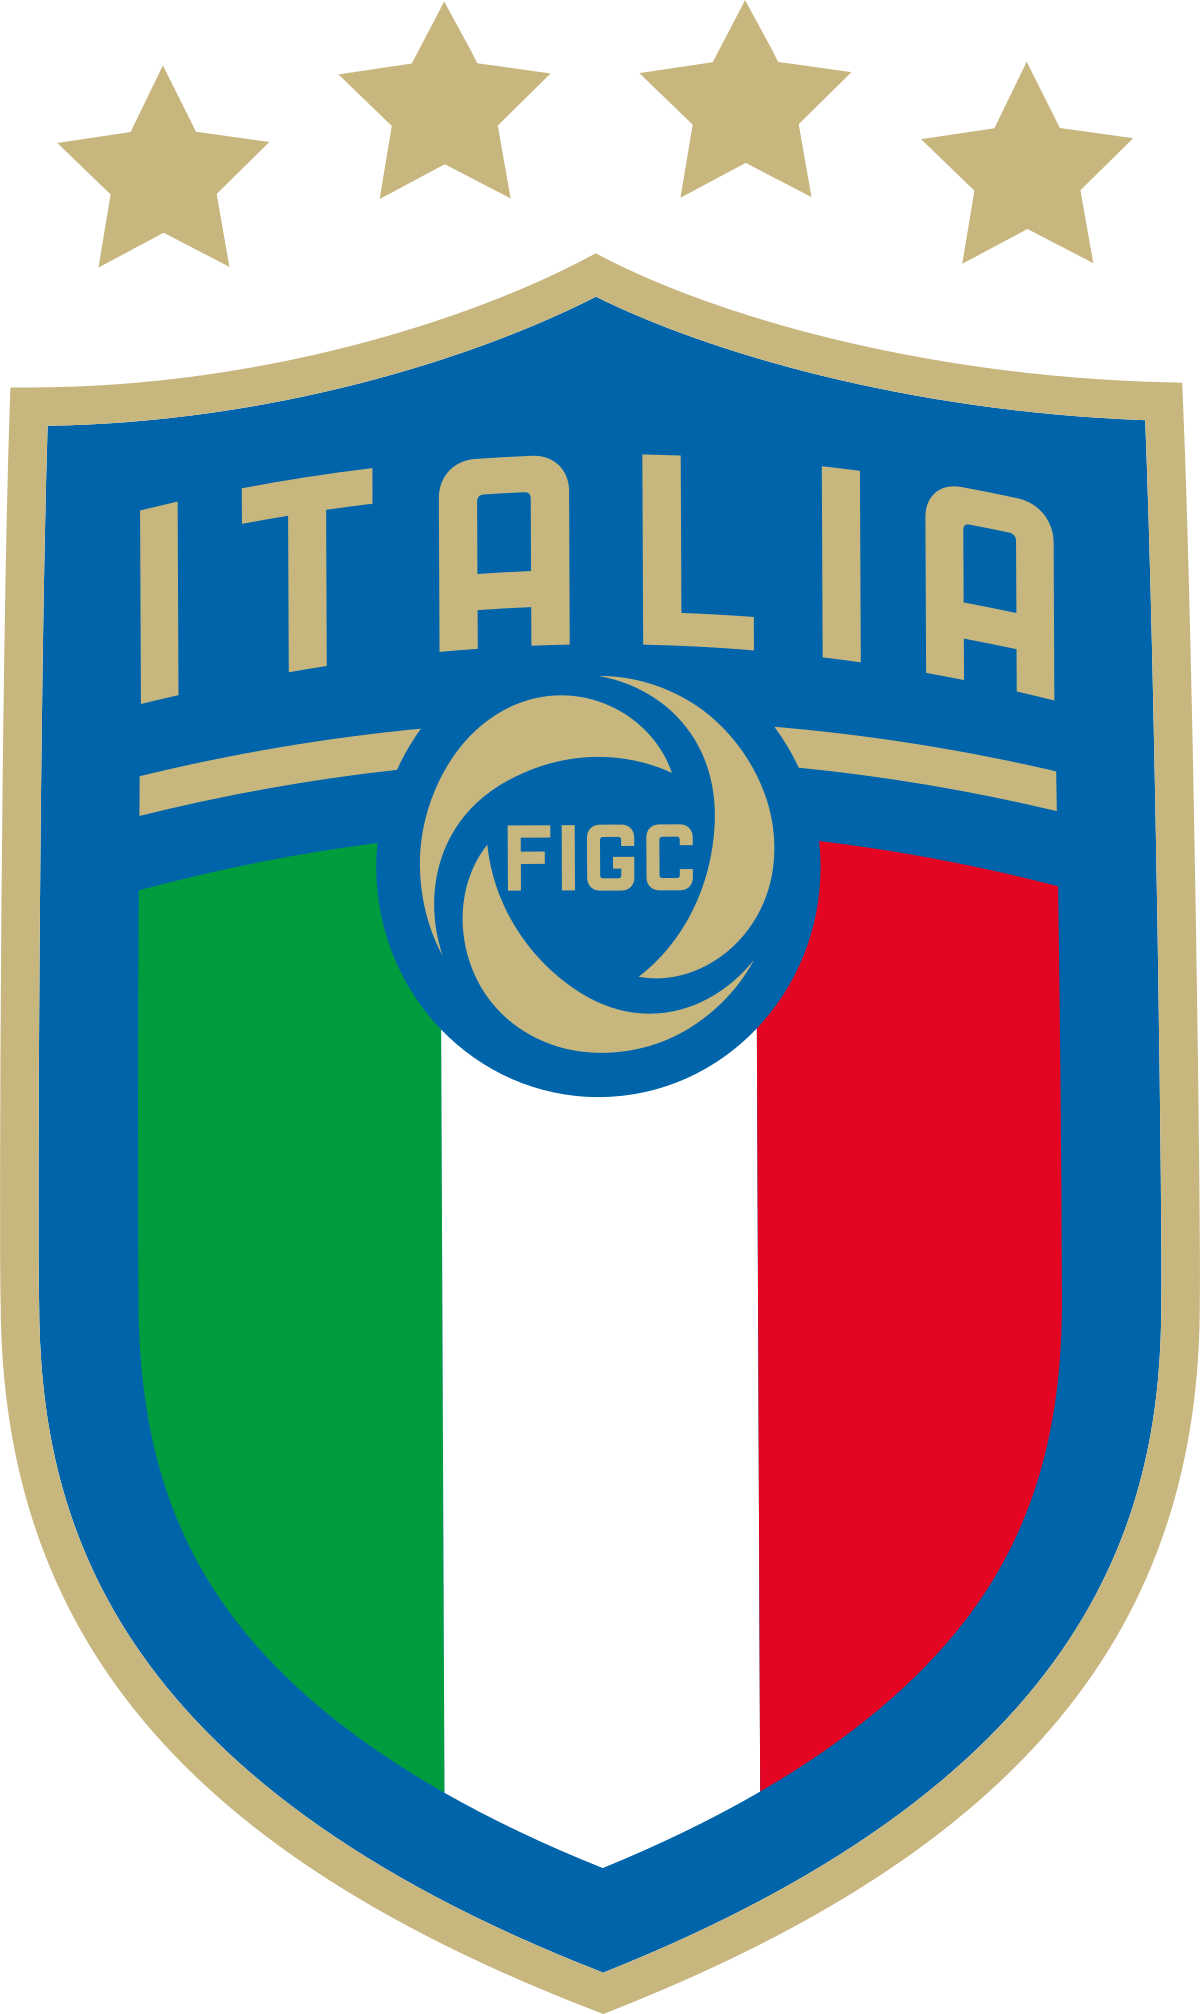 Italian club logos and. Manager clipart football manager